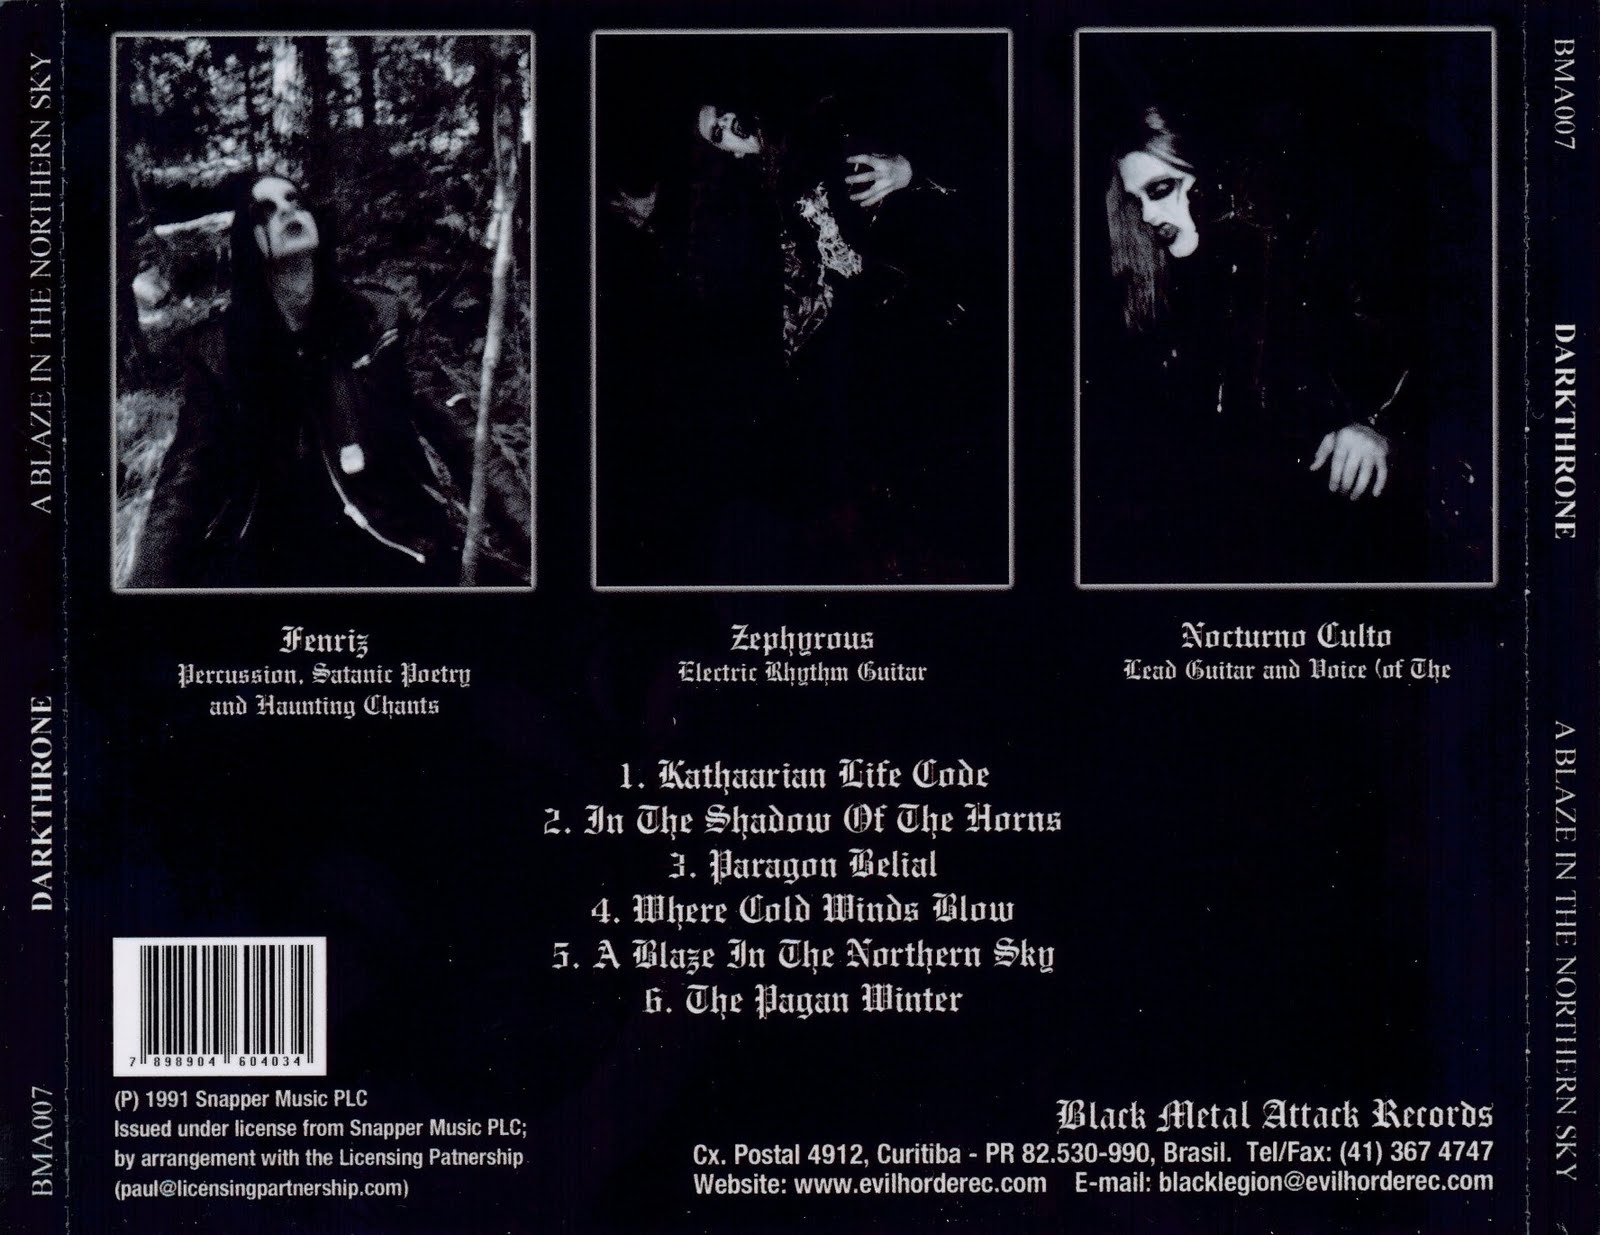 the arrival darkthrone a blaze in the northern sky 1992